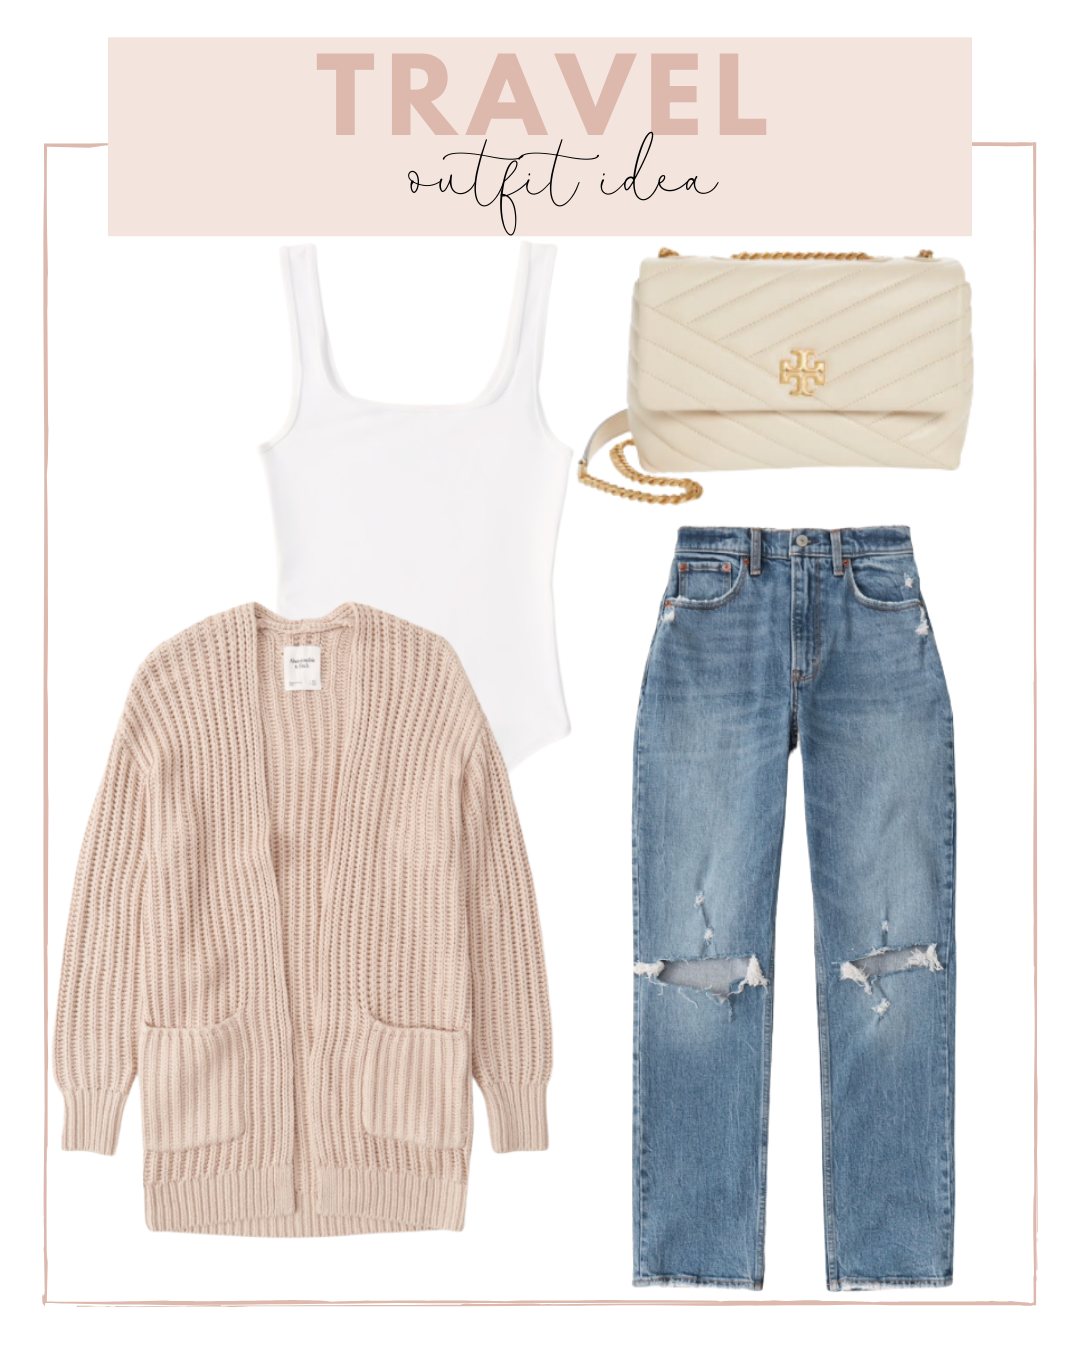 Easy outfits for traveling